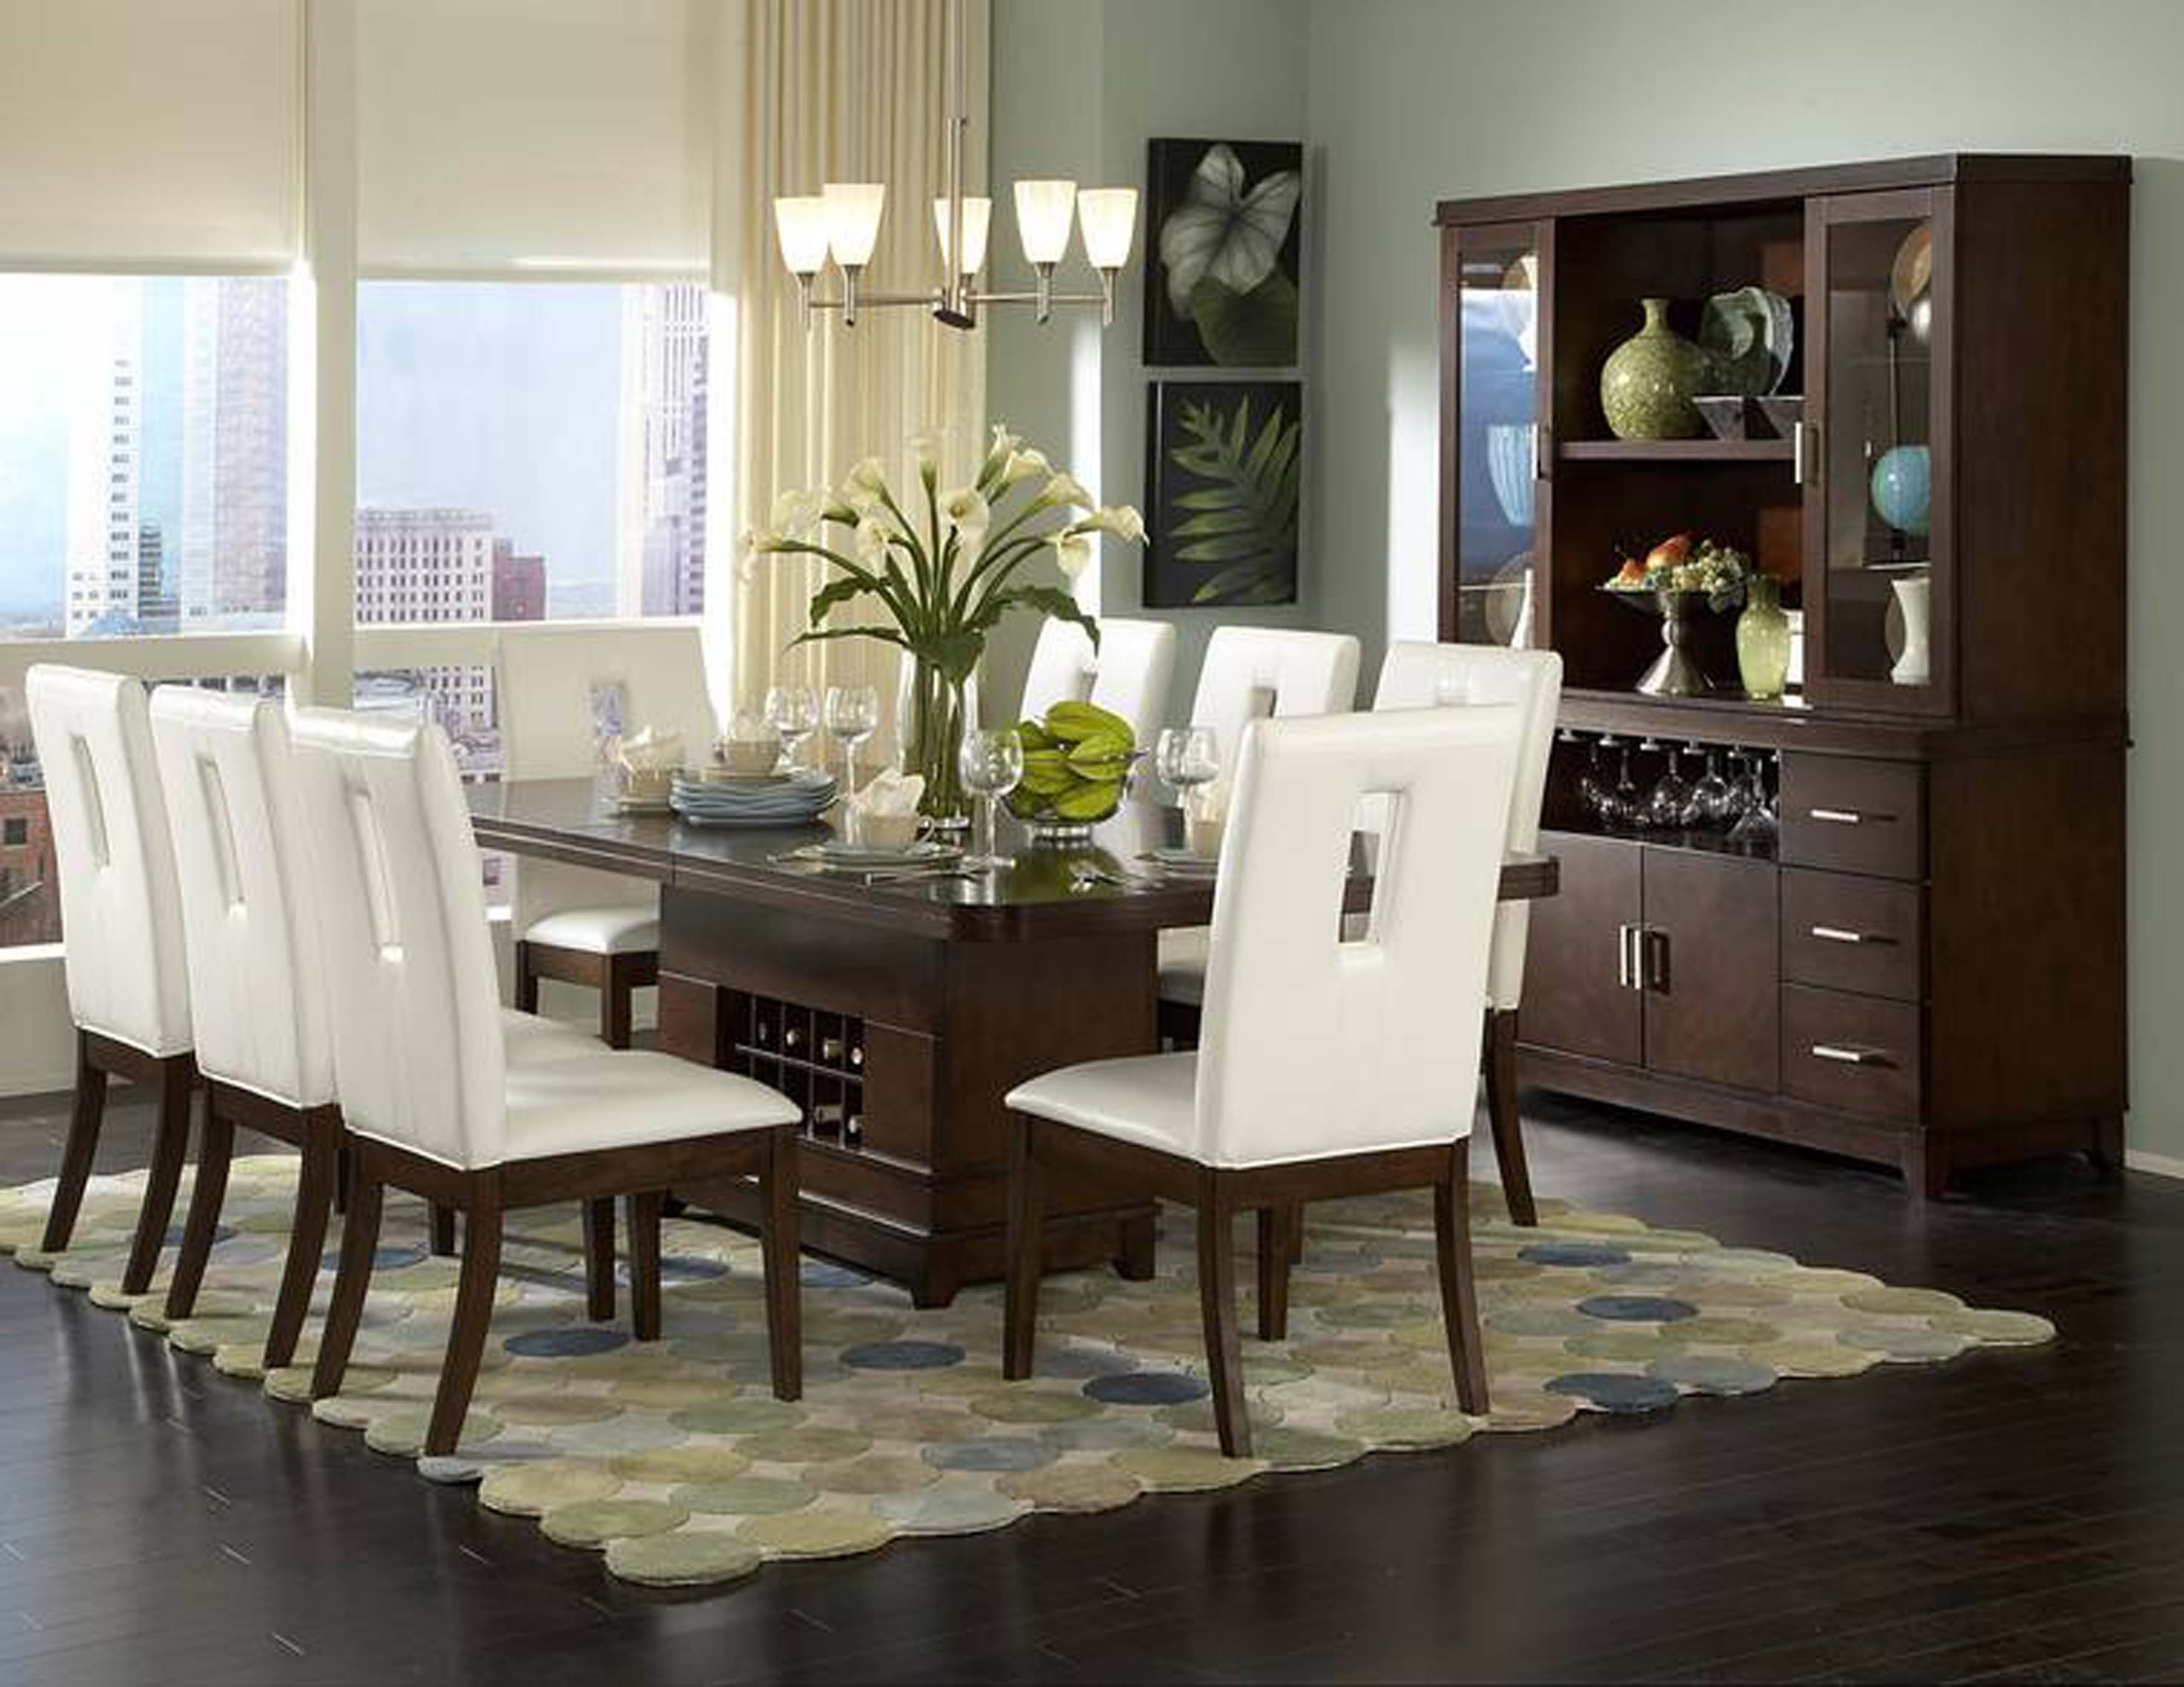 Dining Room Table Seats 12 for Big Family – HomesFeed